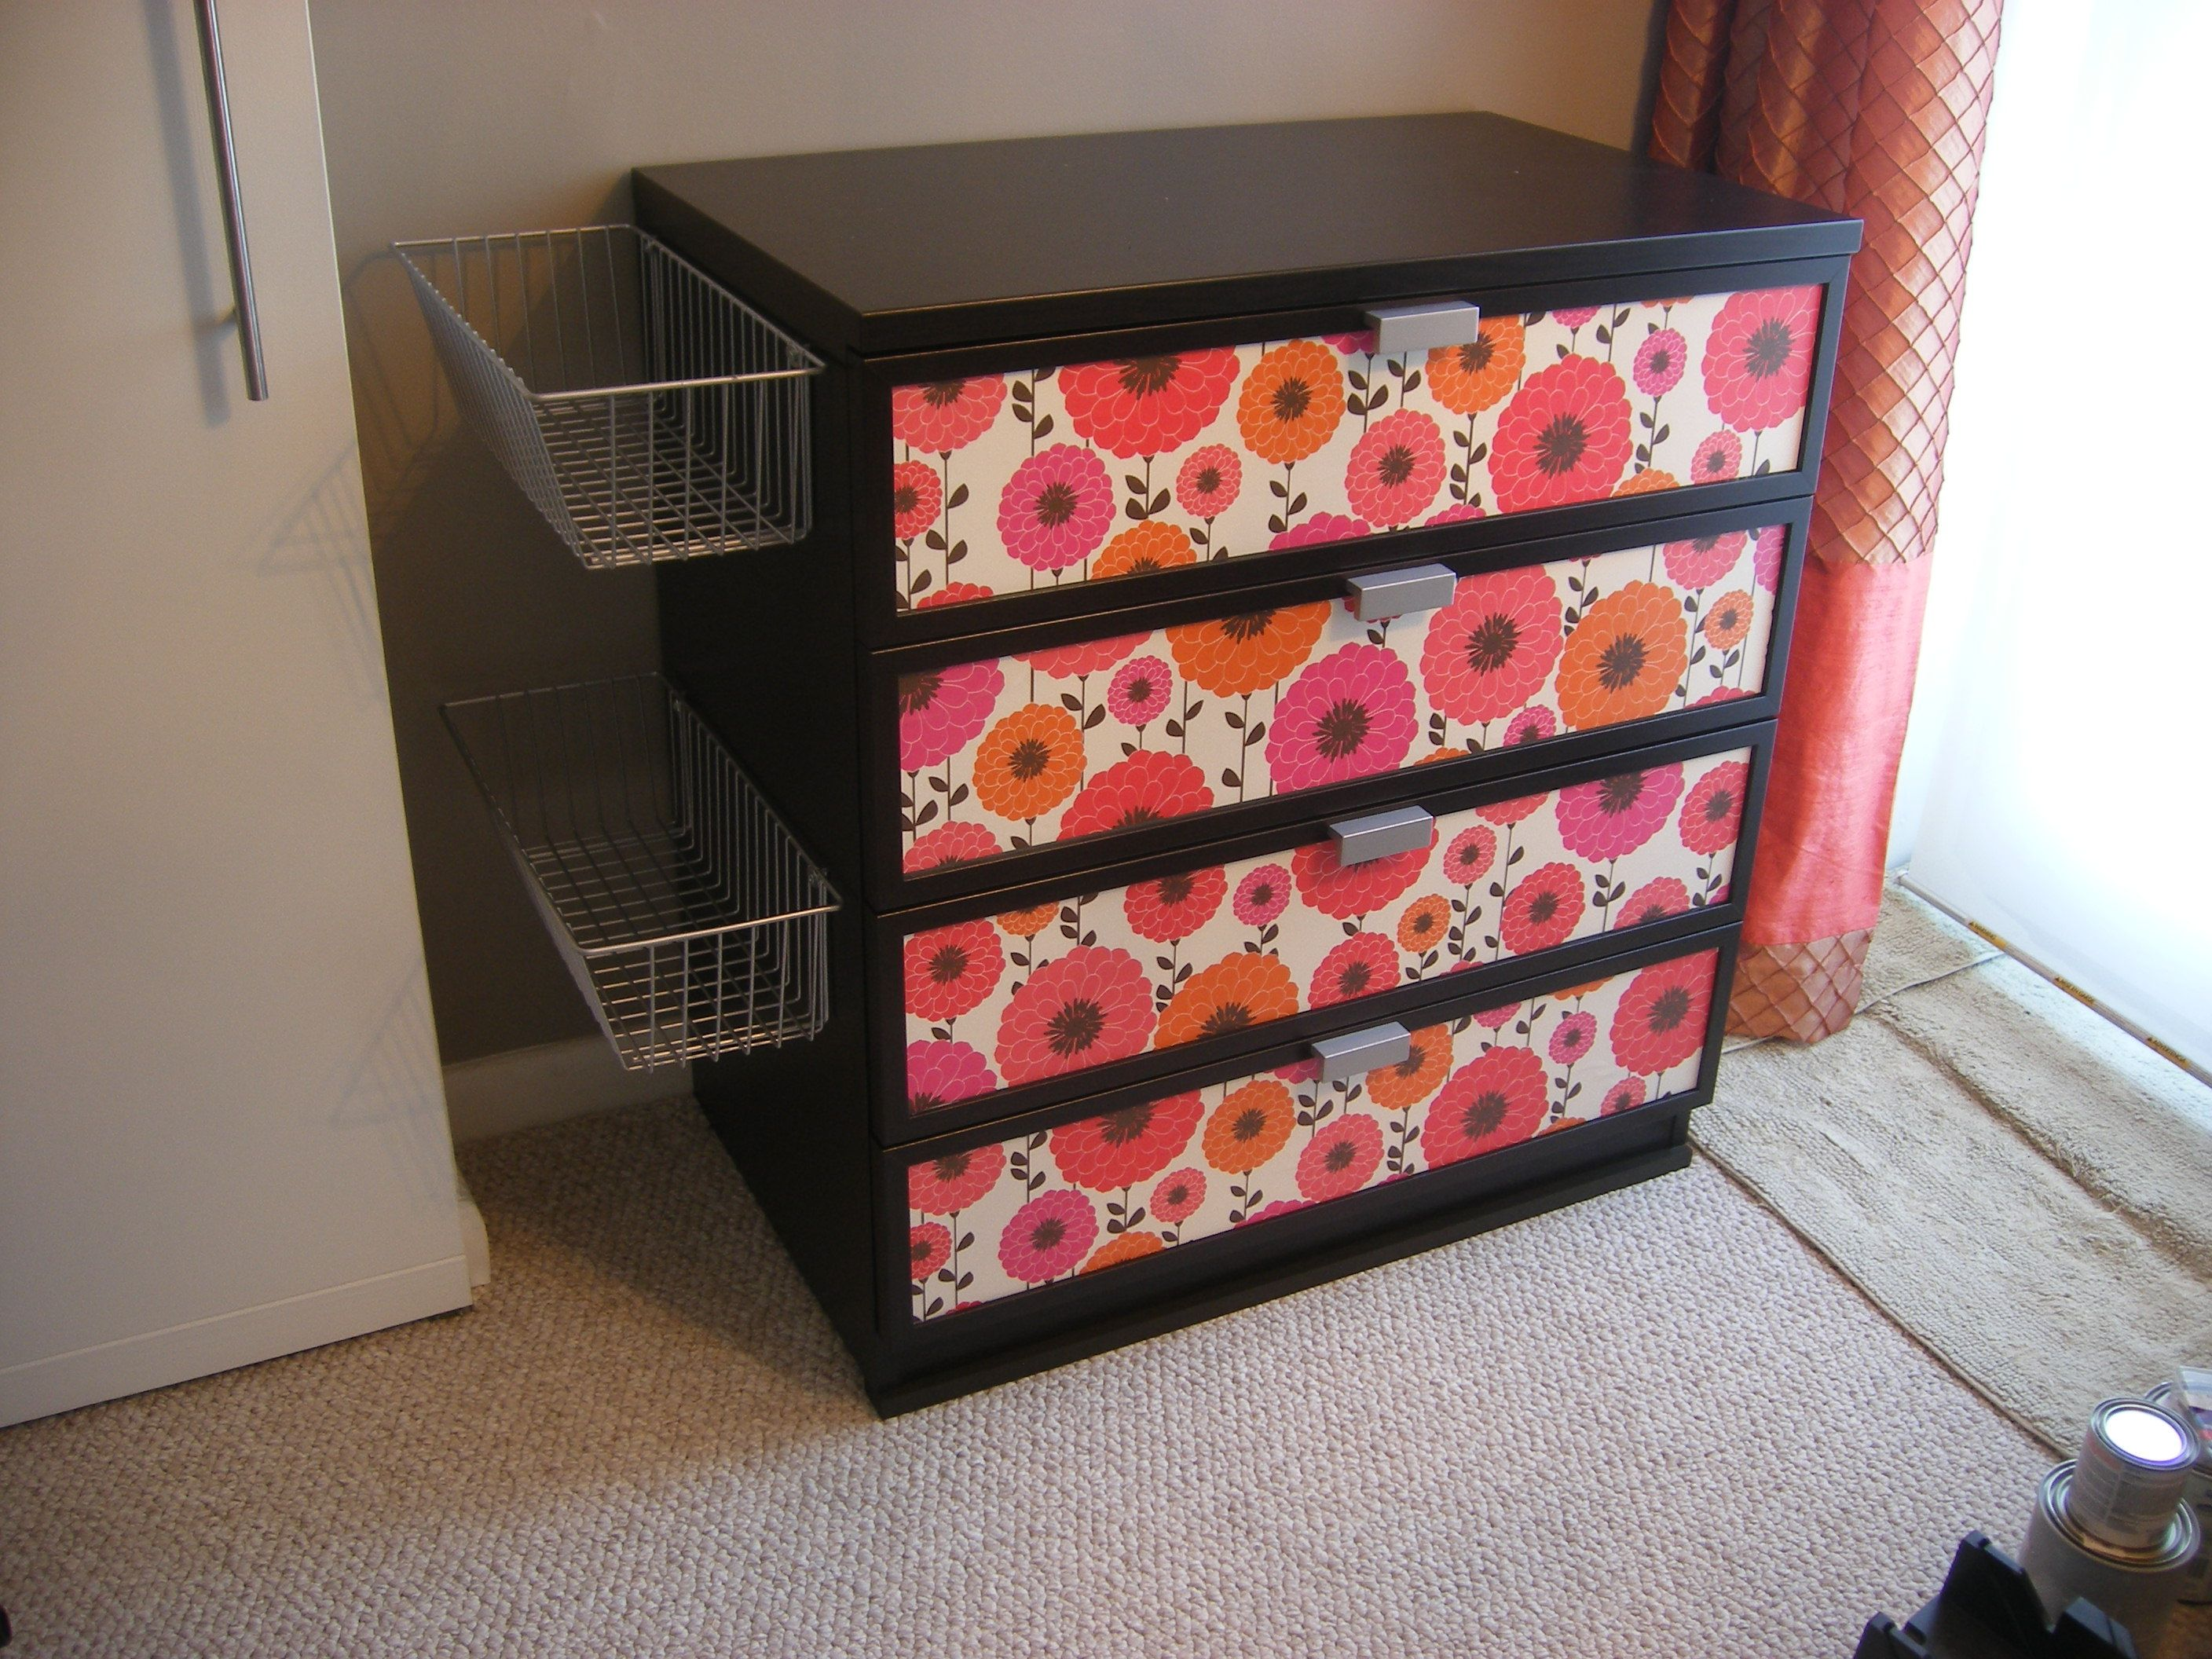 Us Furniture And Home Furnishings Ikea Schlafzimmer Ideen